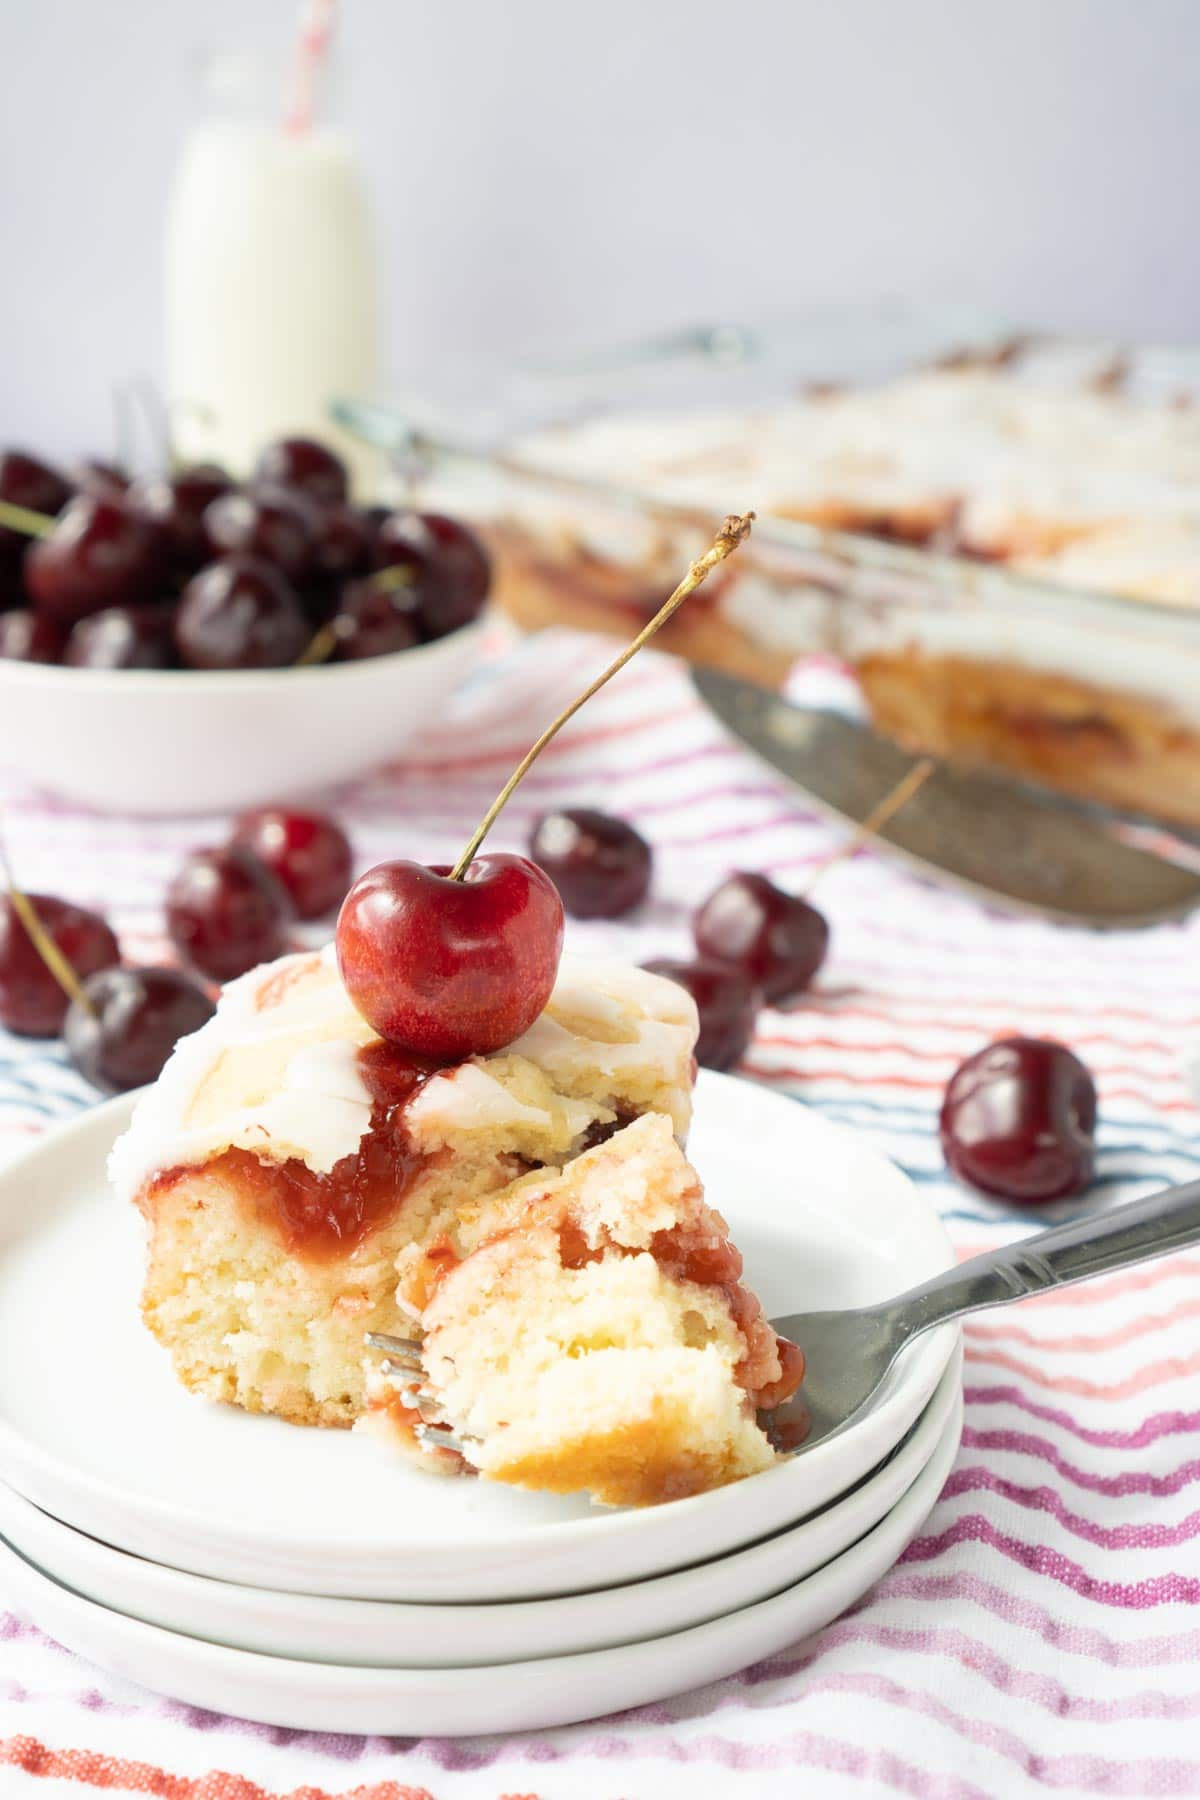 Piece of cherry cake with cherry on top